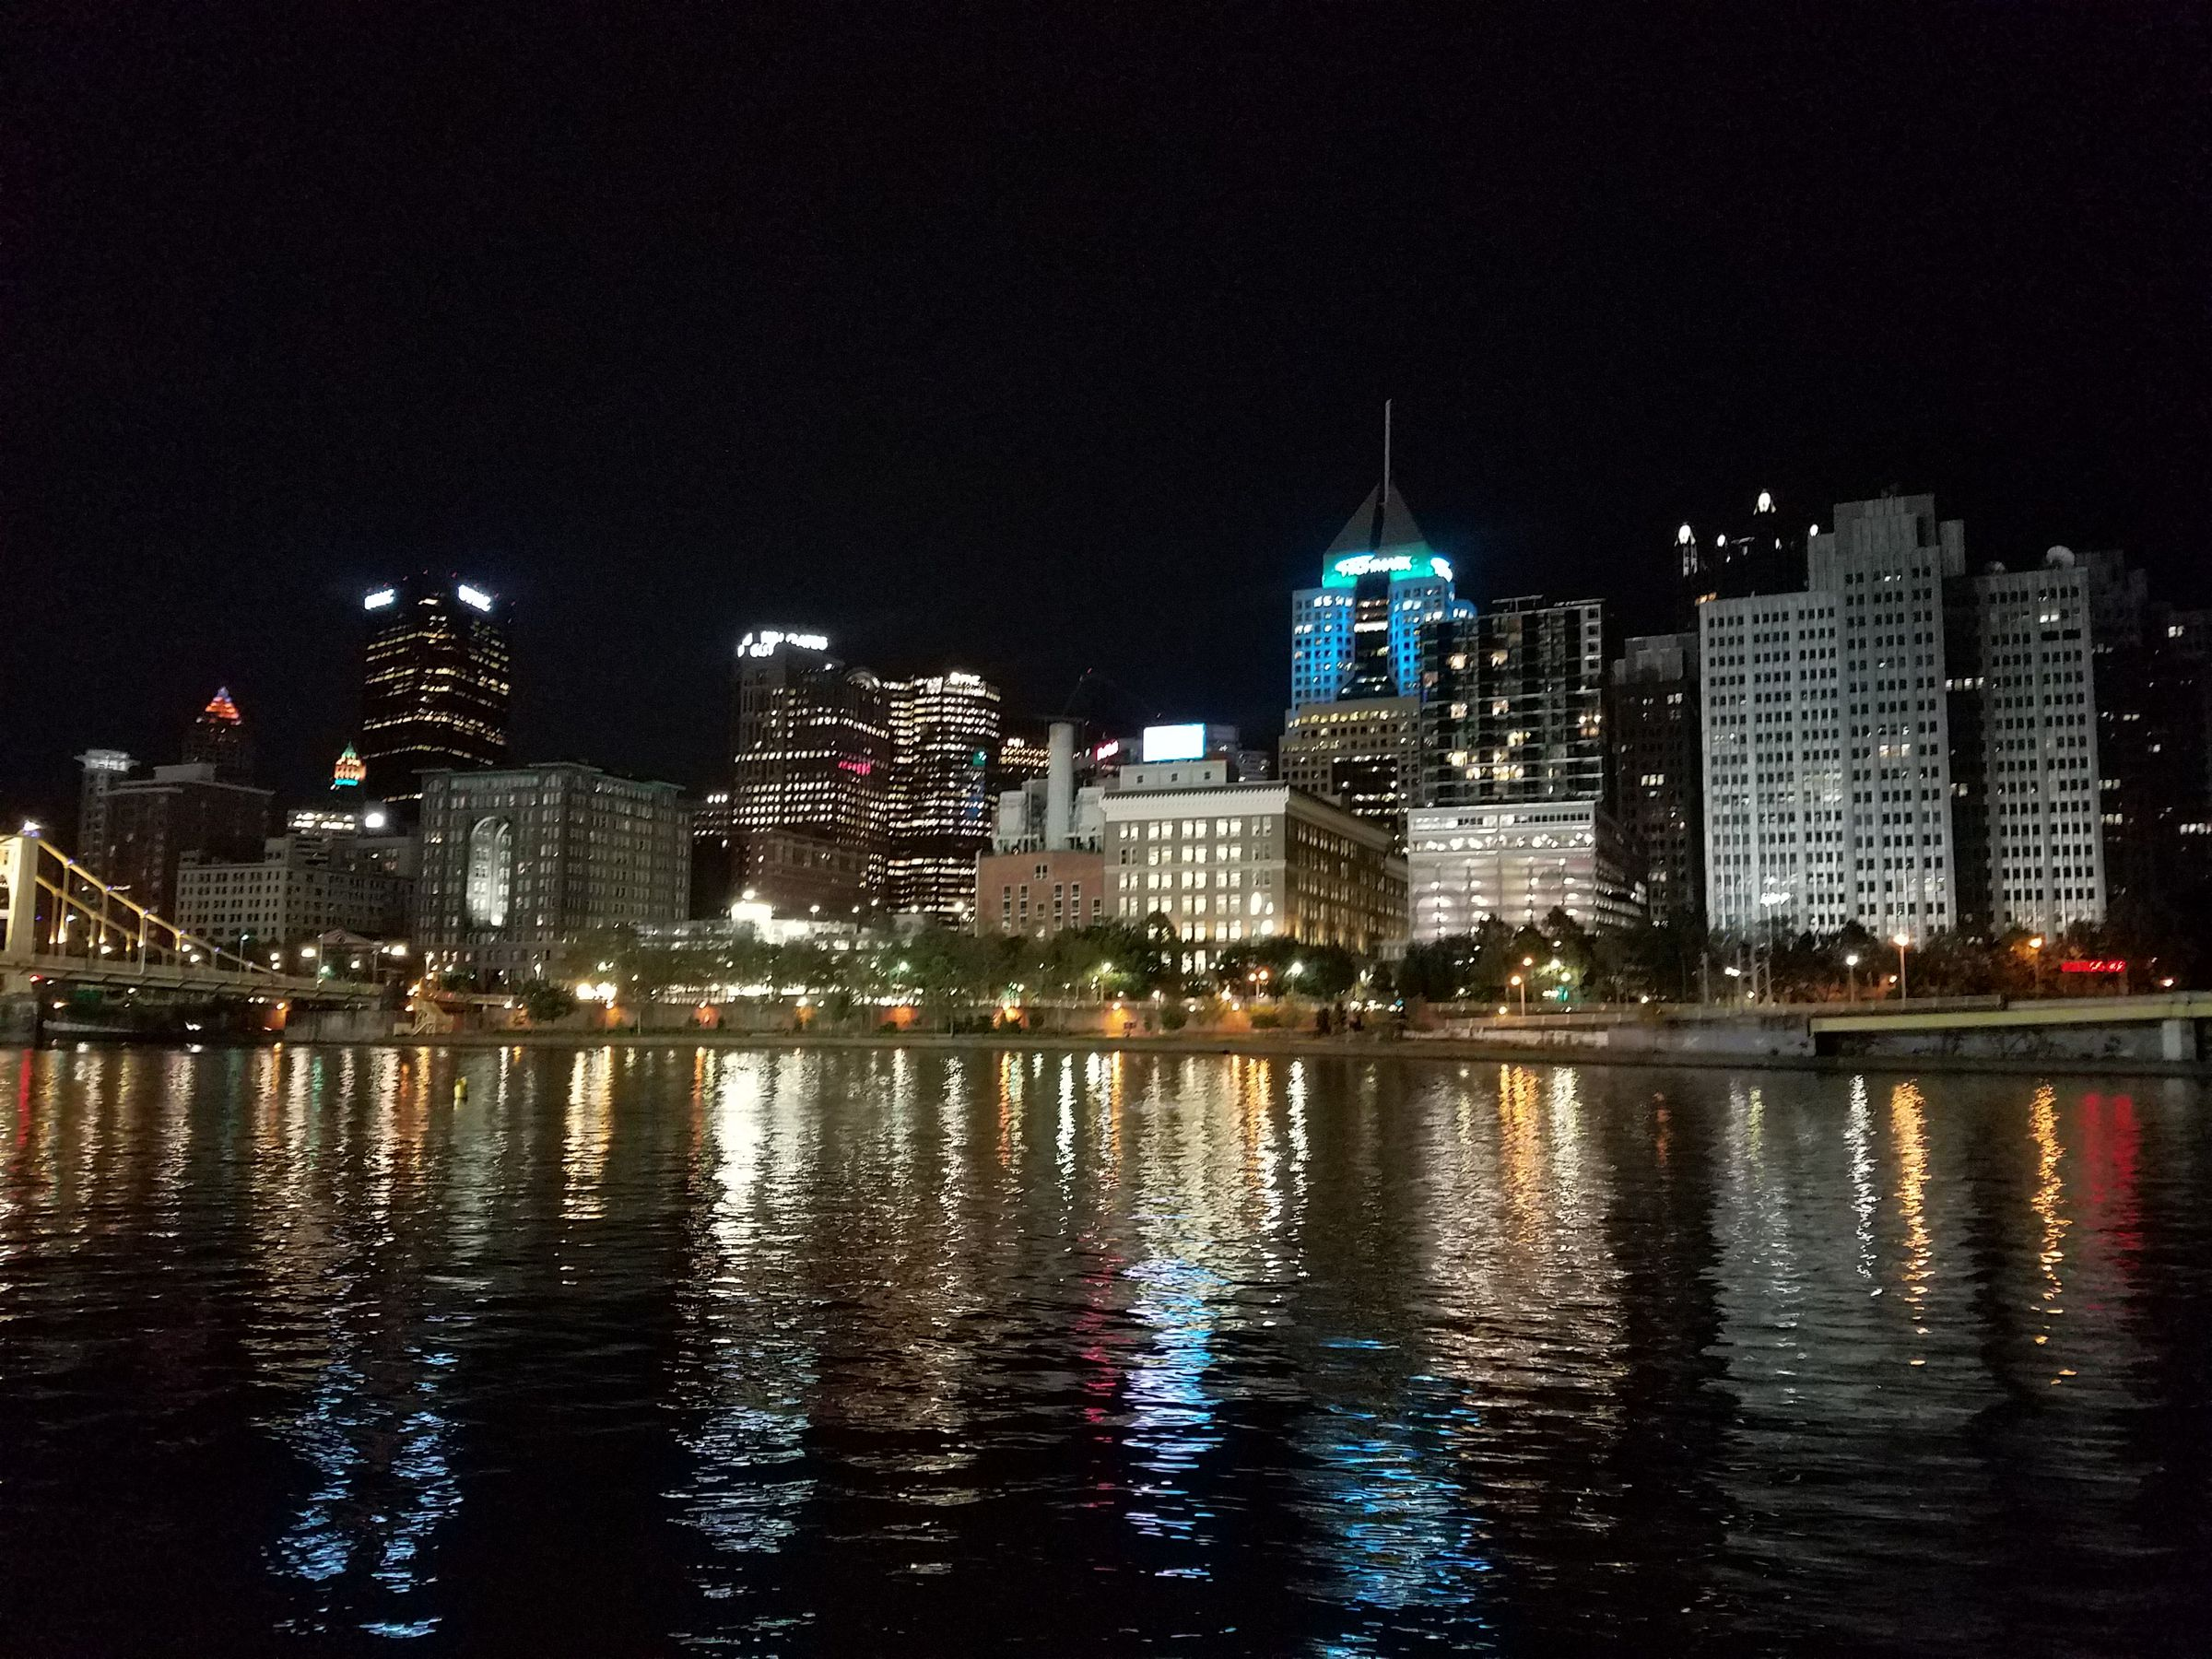 A nighttime view of downtown Pittsburgh from the north shore, across the Allegheny River. The water reflects the light from windows and street lamps.